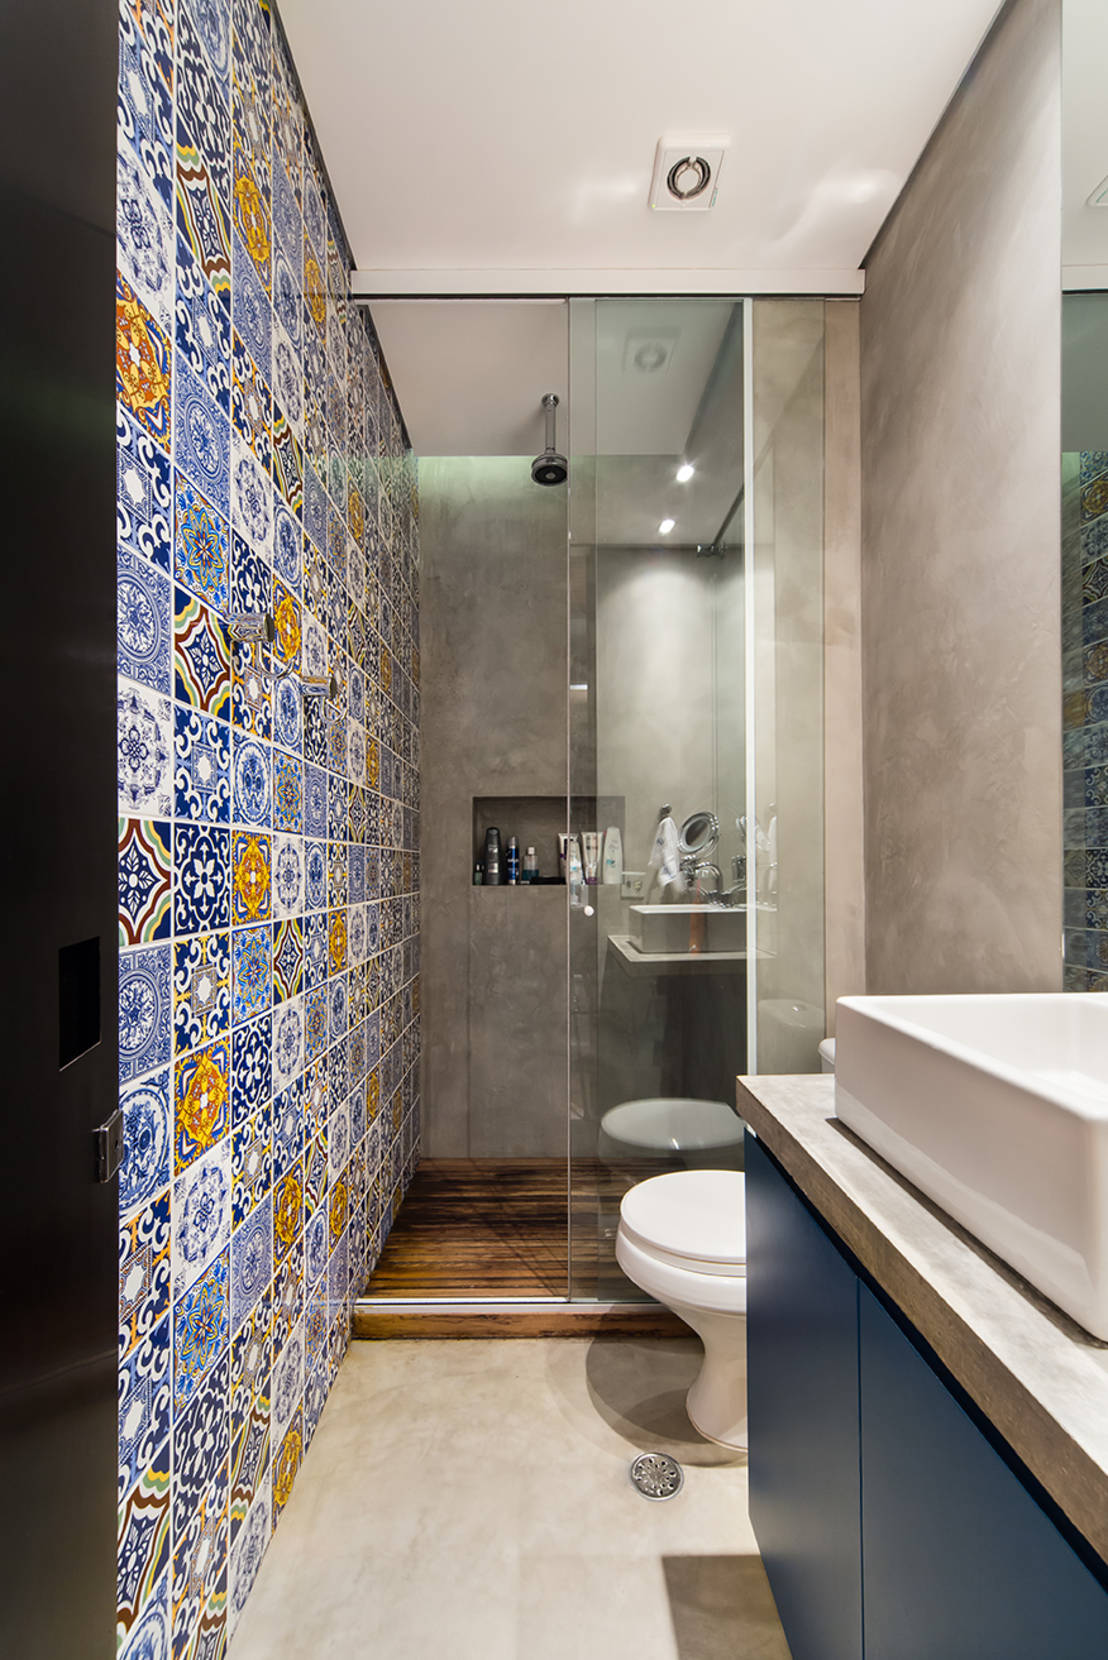 7 Common Design Mistakes For Small Bathrooms